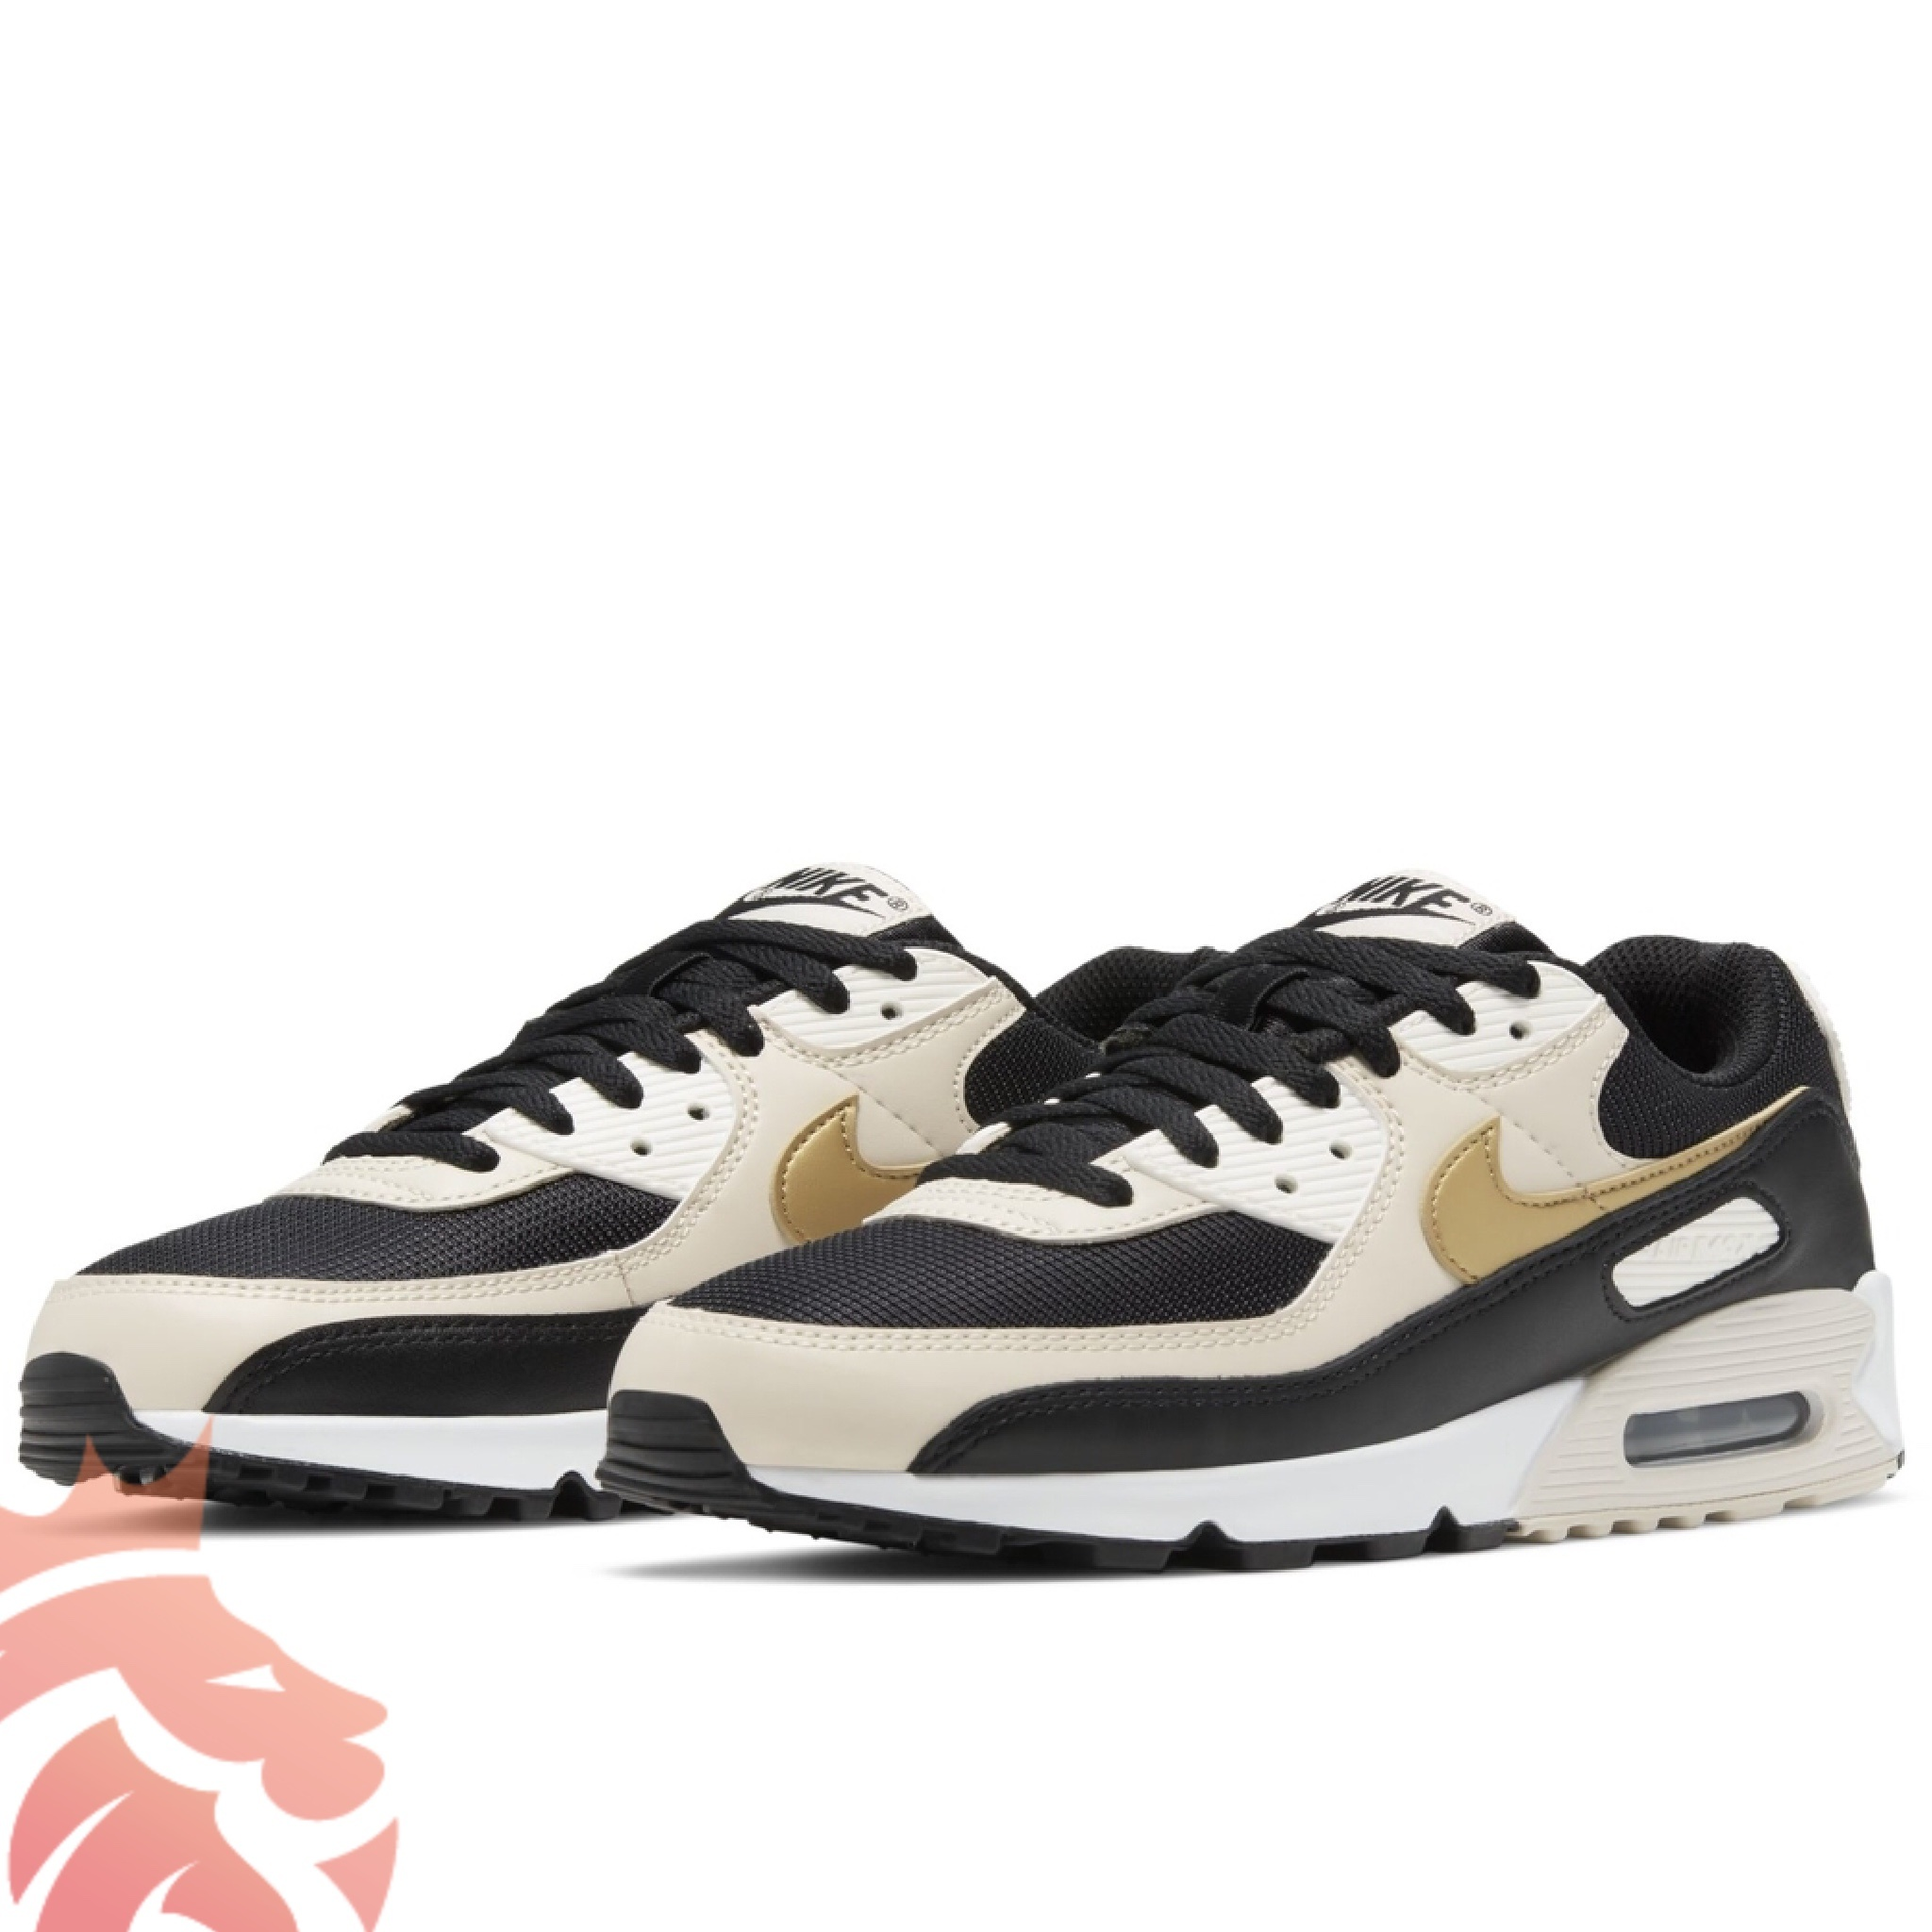 Nike Air Max 90 Black/Metallic Gold/Summit White